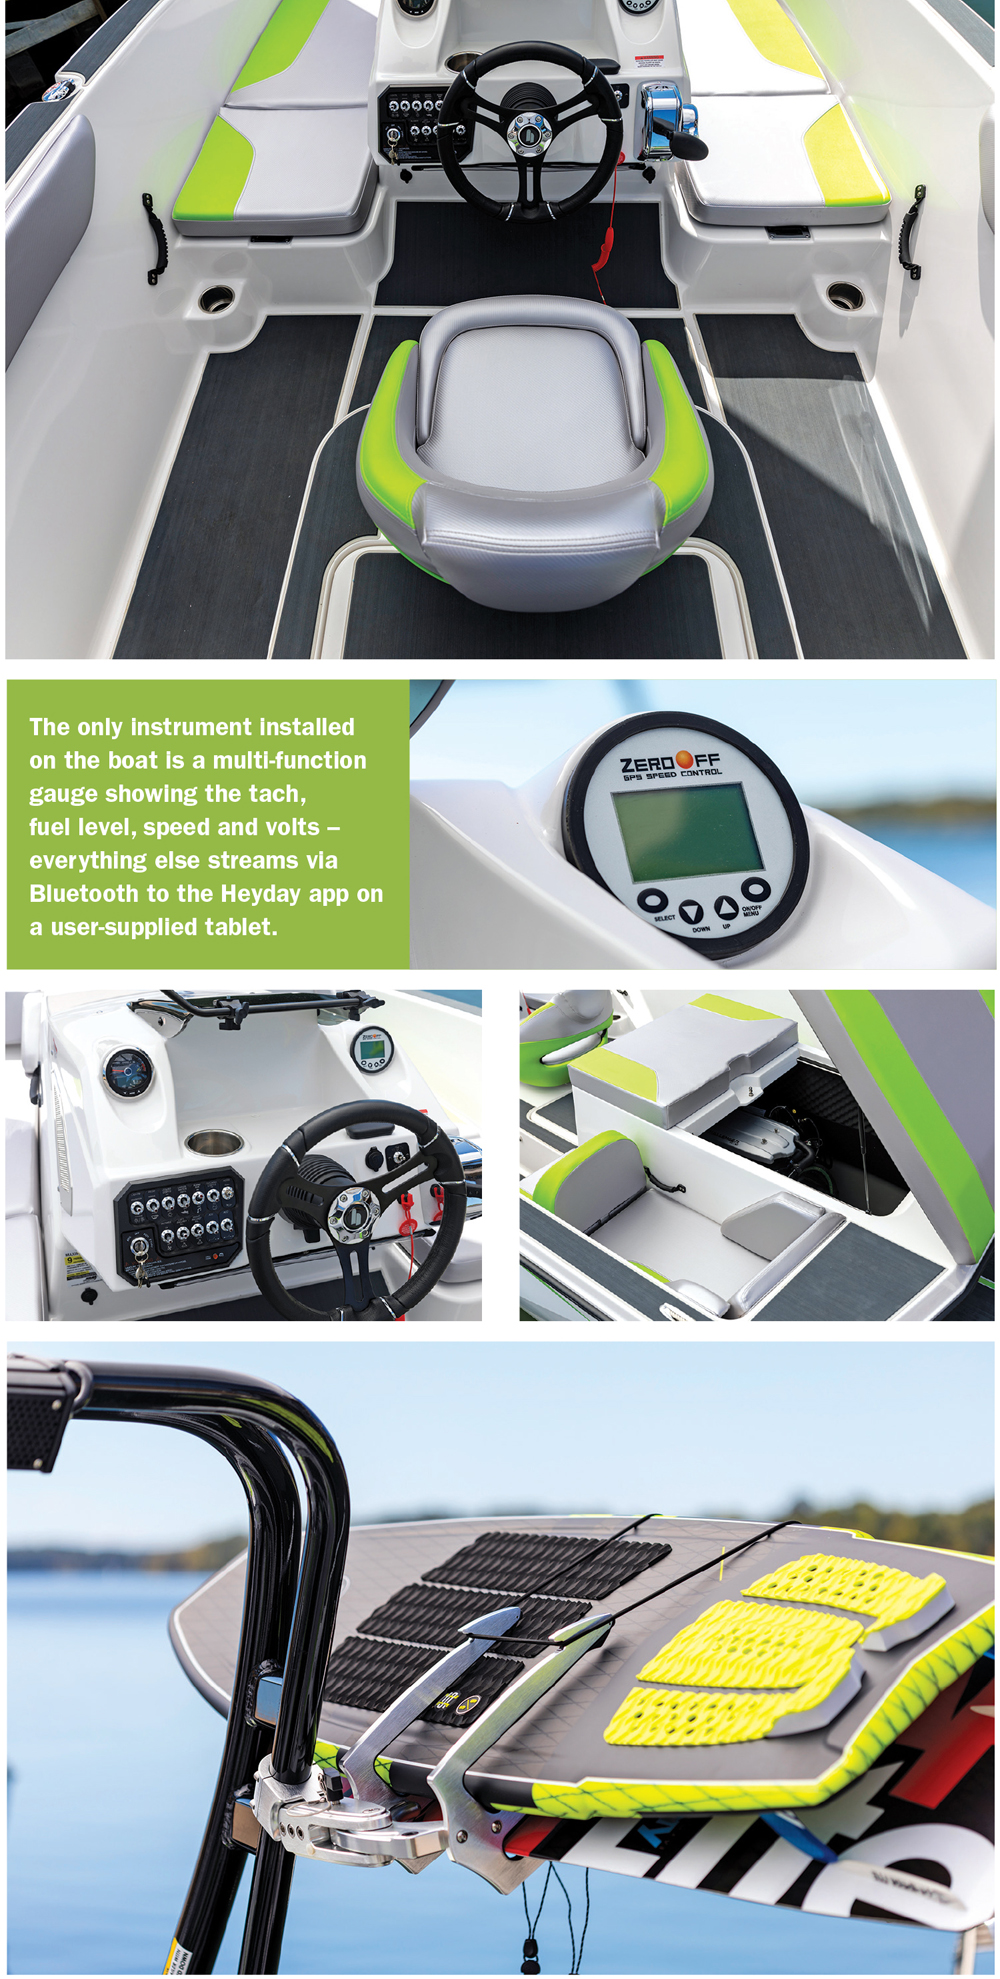 BOAT REVIEW: Heyday WT-1 SURF Wakeboarding and Wakesurfing